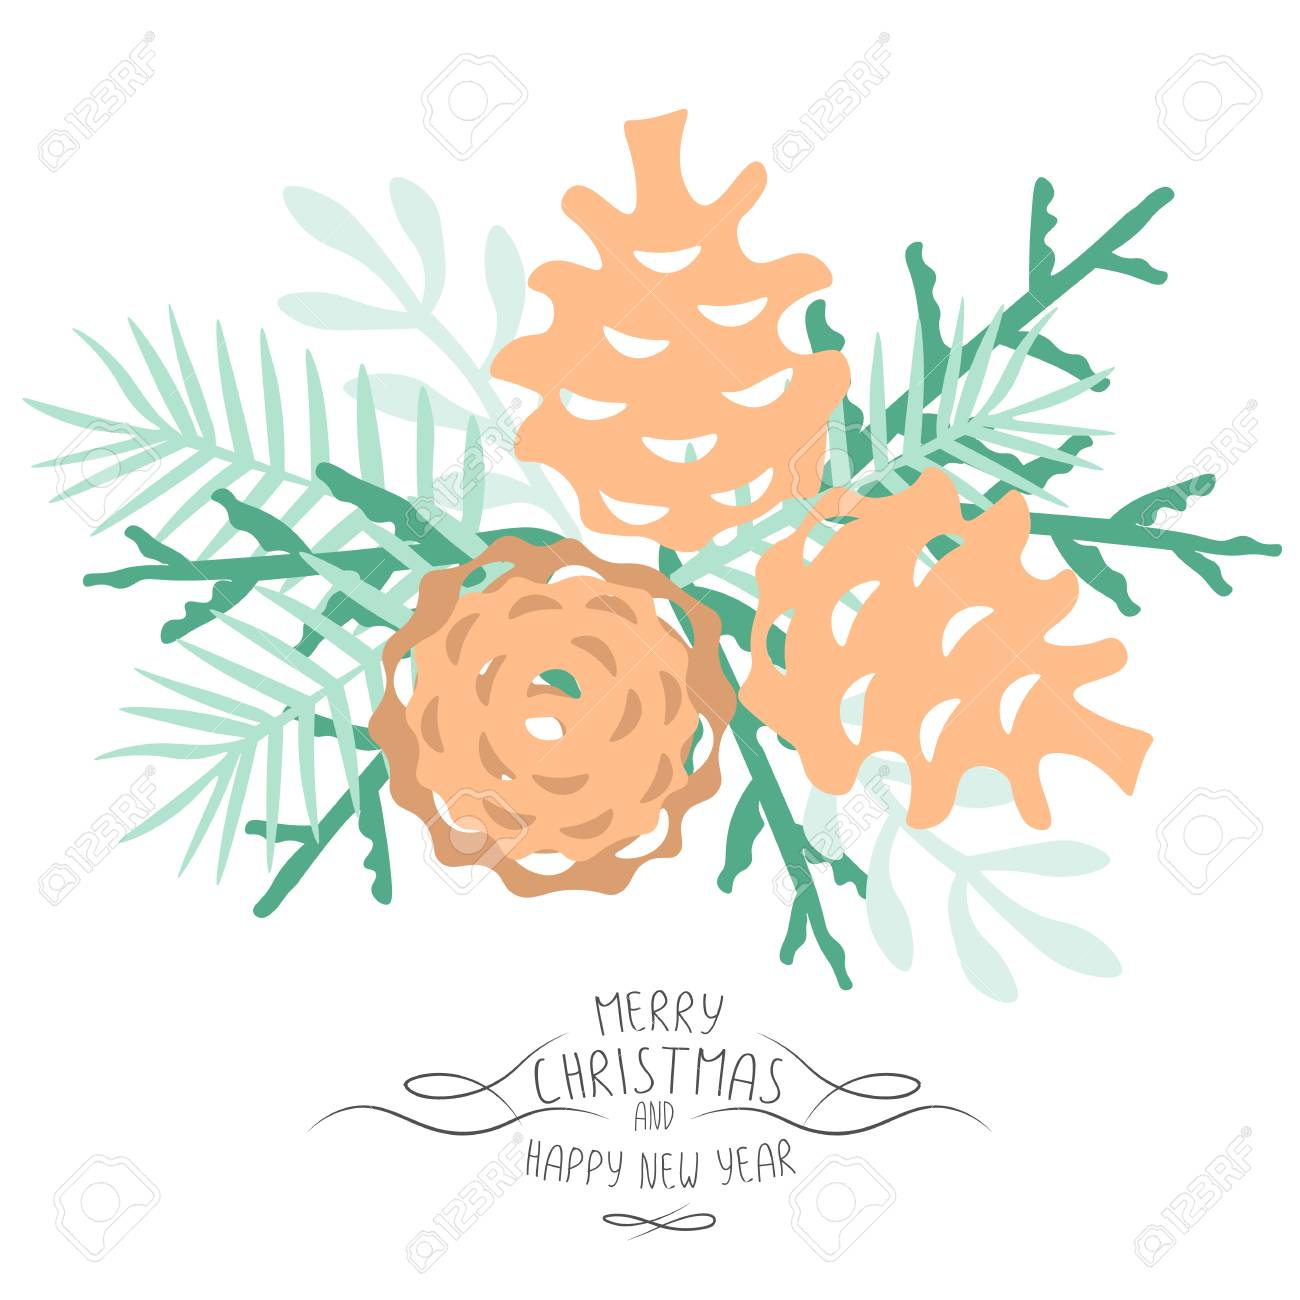 vector vintage merry christmas and happy new year background pine cones and spruce twigs stylish vector illustration on winter greeting card